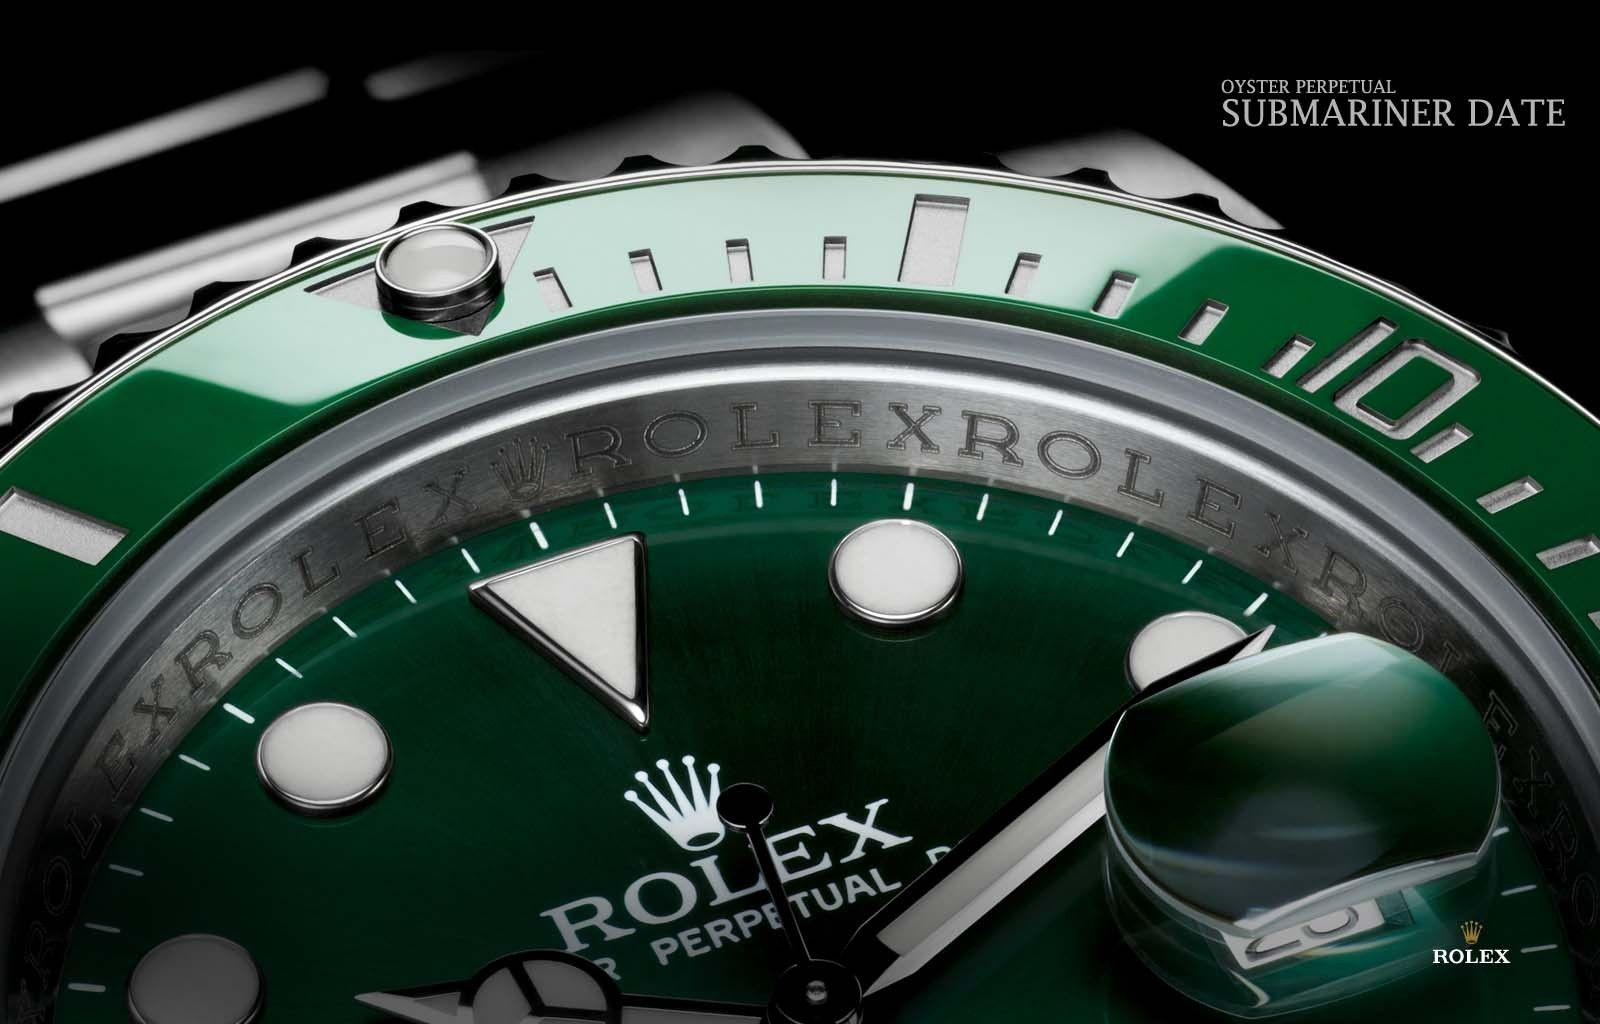 Rolex Wallpapers High Quality Resolution • dodskypict